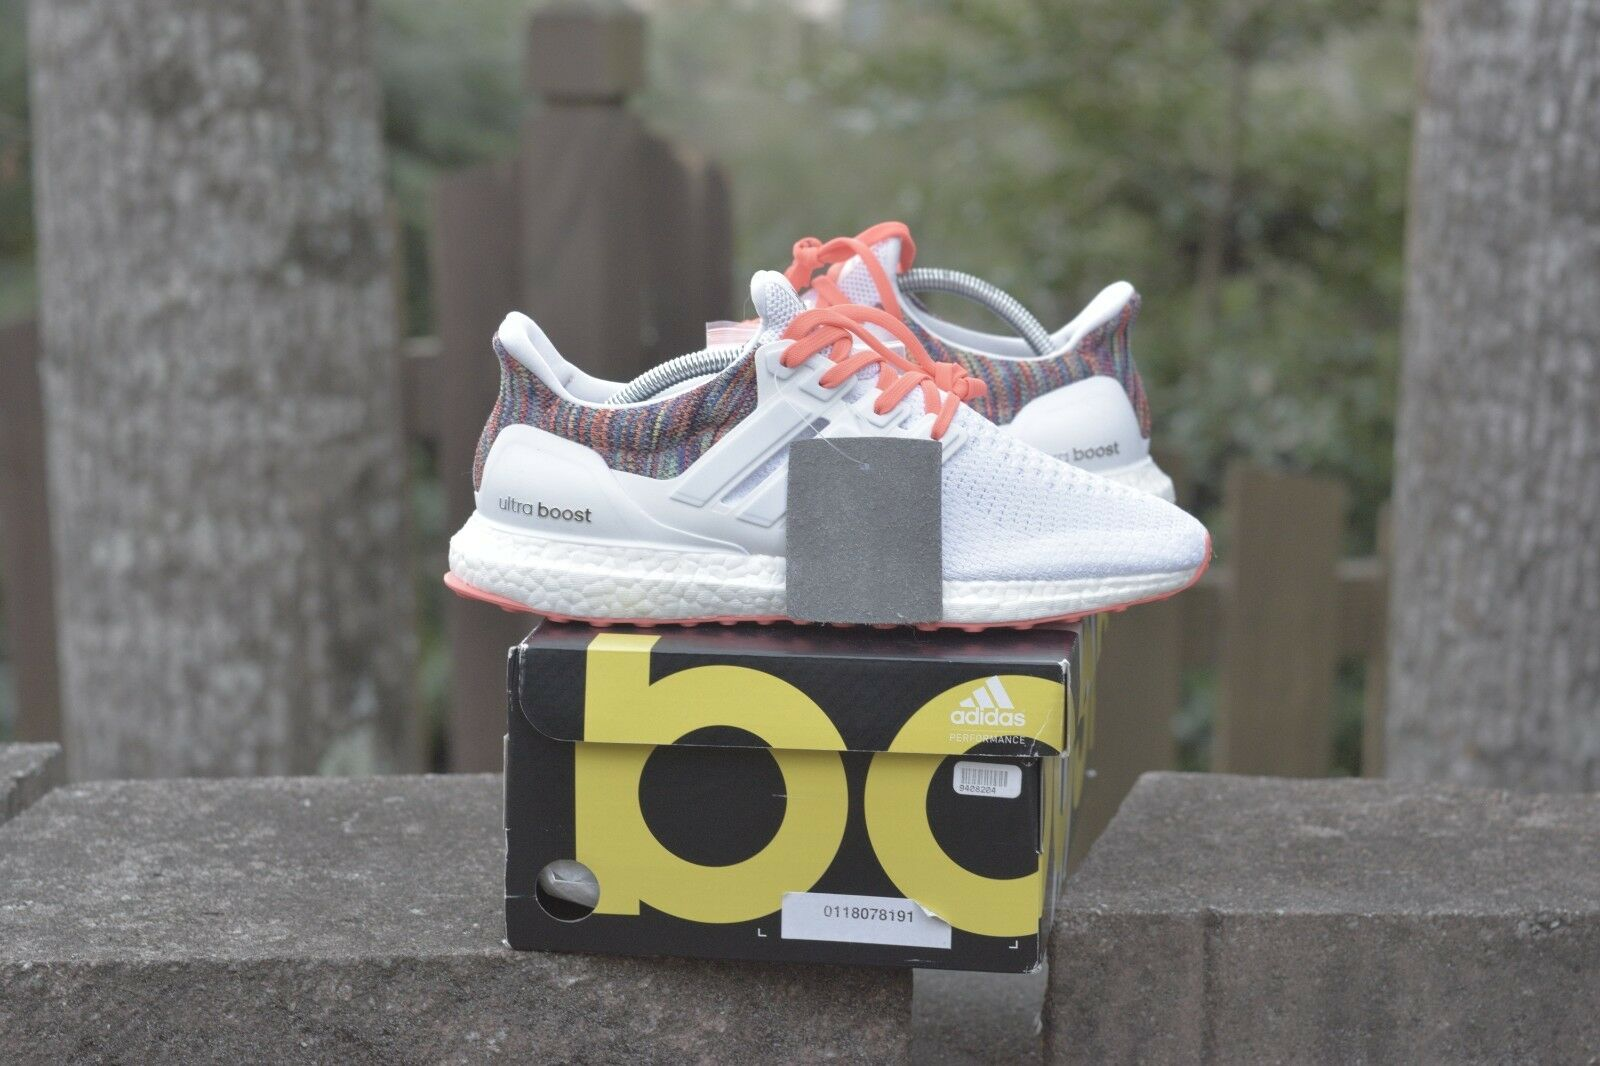 5707a58f5a2ab NEW Adidas miAdidas Ultraboost 2.0 Size 9 Rainbow White nosidv8446-Athletic  Shoes